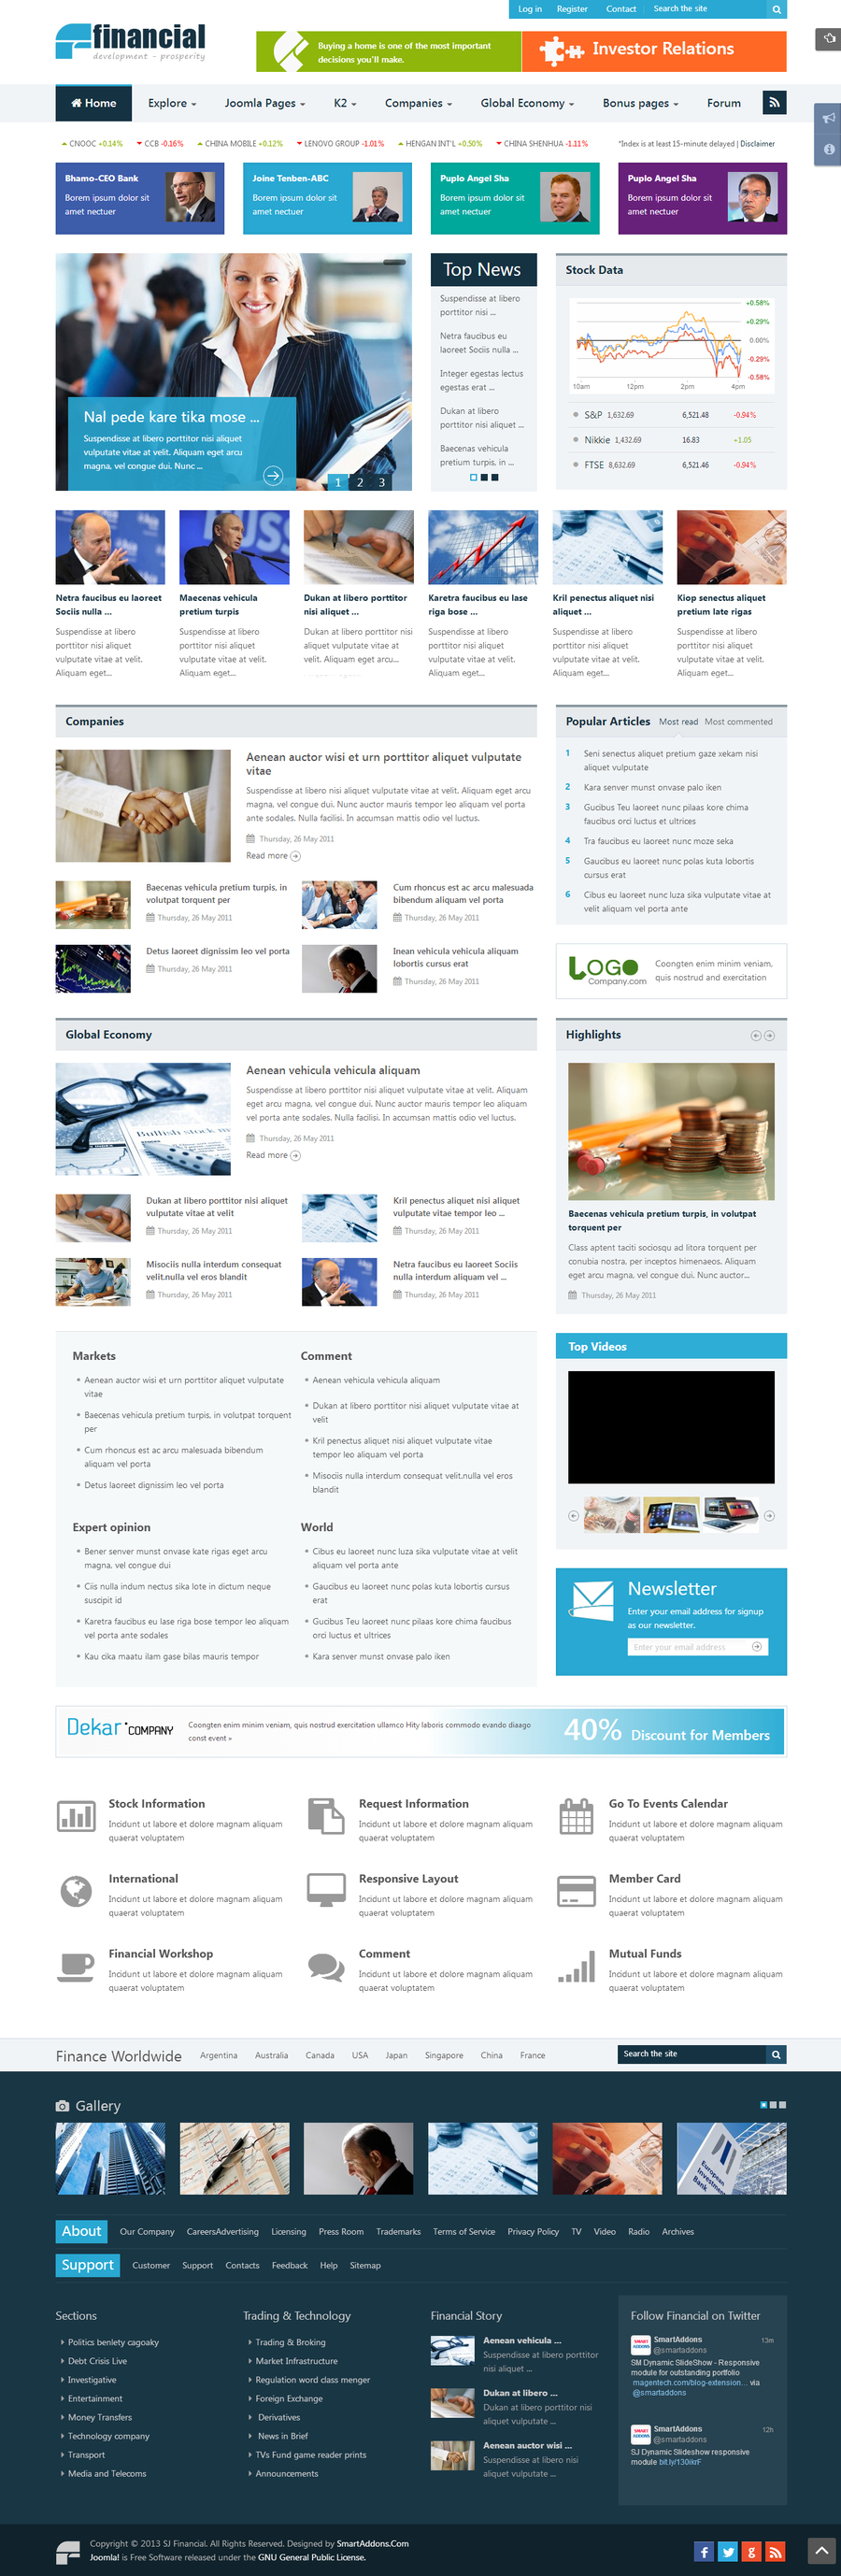 SJ Financial - Responsive Joomla Financial News Template - 02index-blue.jpg